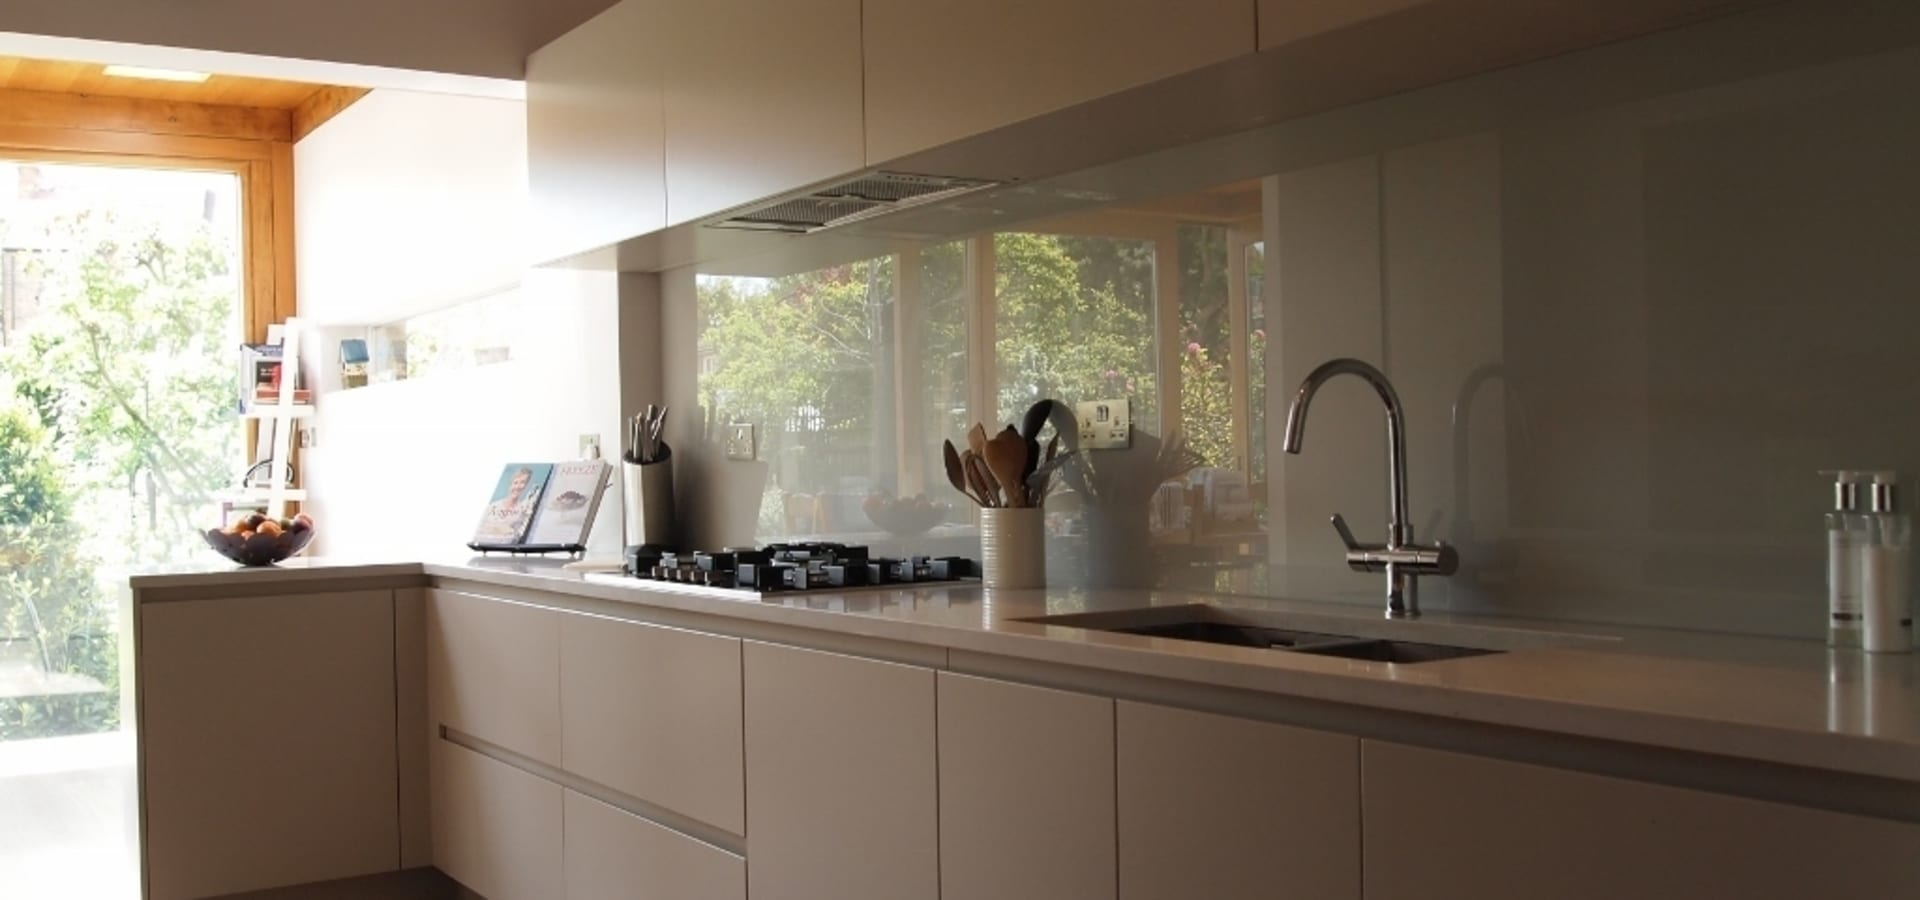 Place Design Kitchens and Interiors